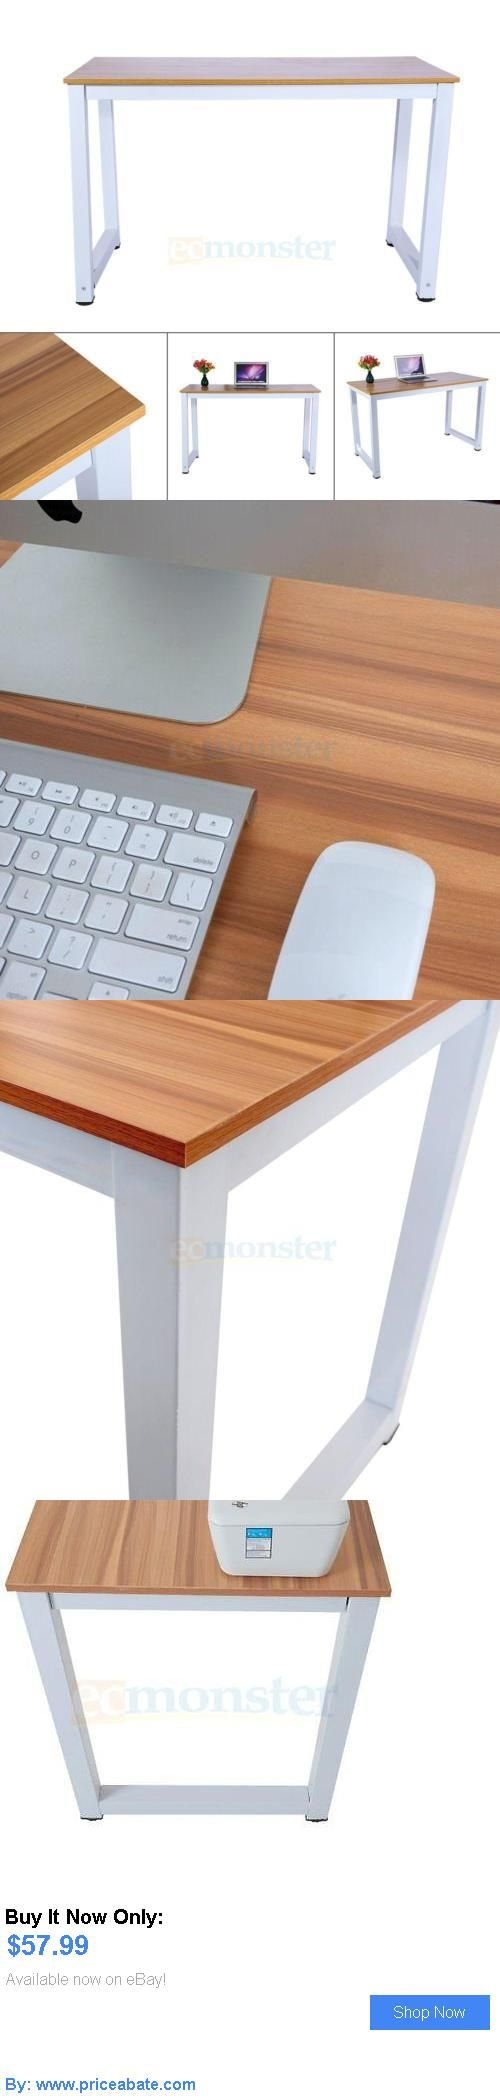 Office Furniture: Computer Desk Brown Wood Pc Laptop Table Workstation Study Home Office Furniture BUY IT NOW ONLY: $57.99 #priceabateOfficeFurniture OR #priceabate